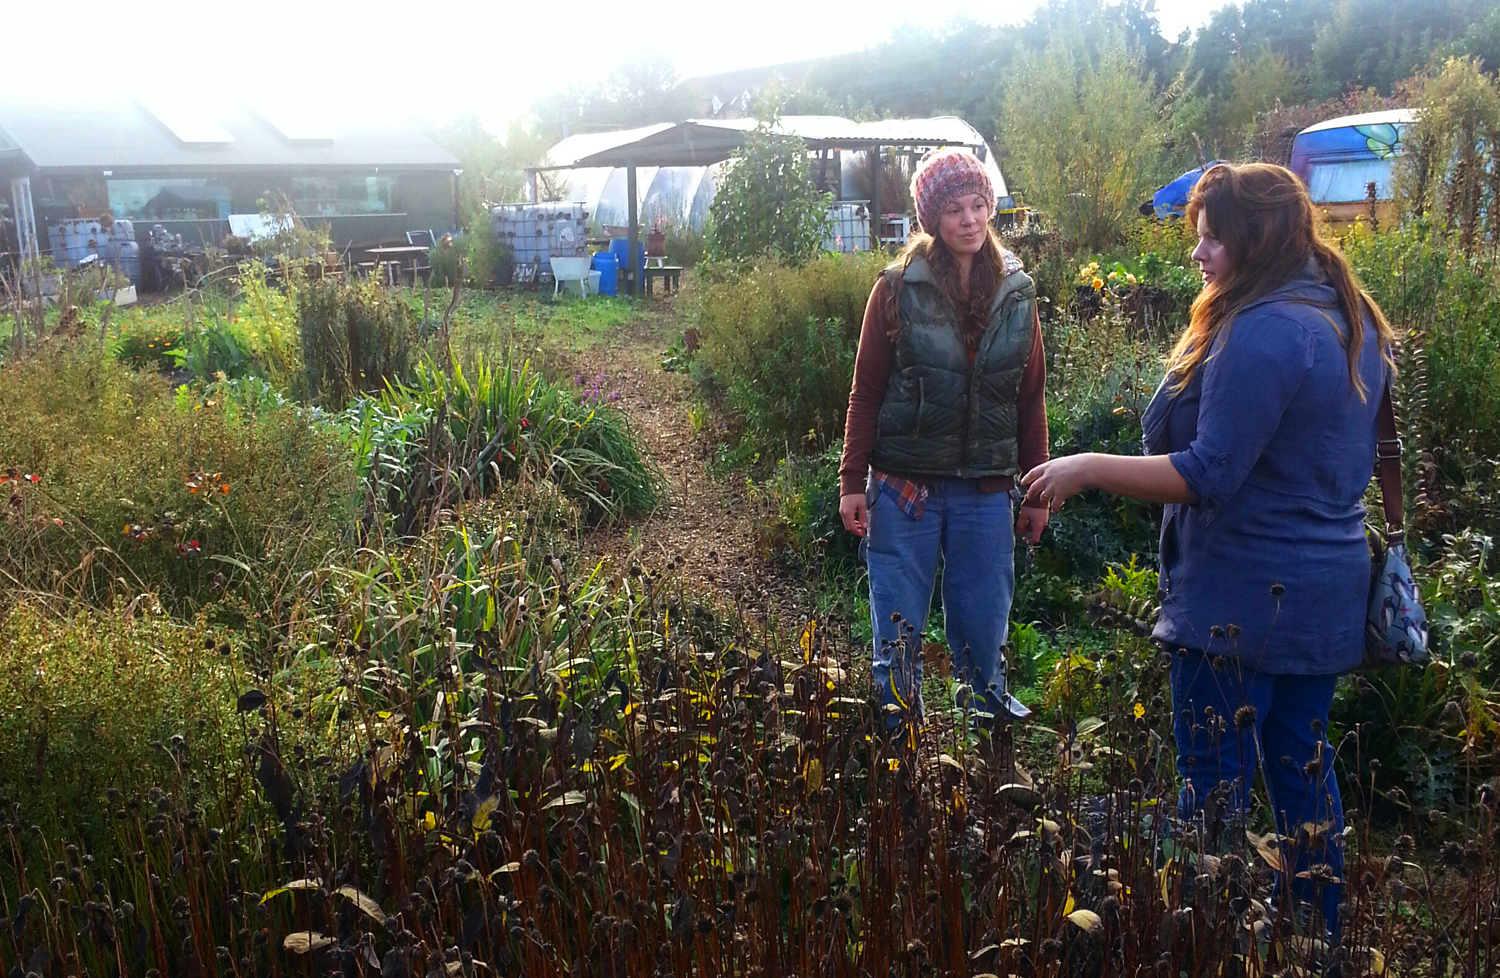 Two women talking in an overgrown allotment